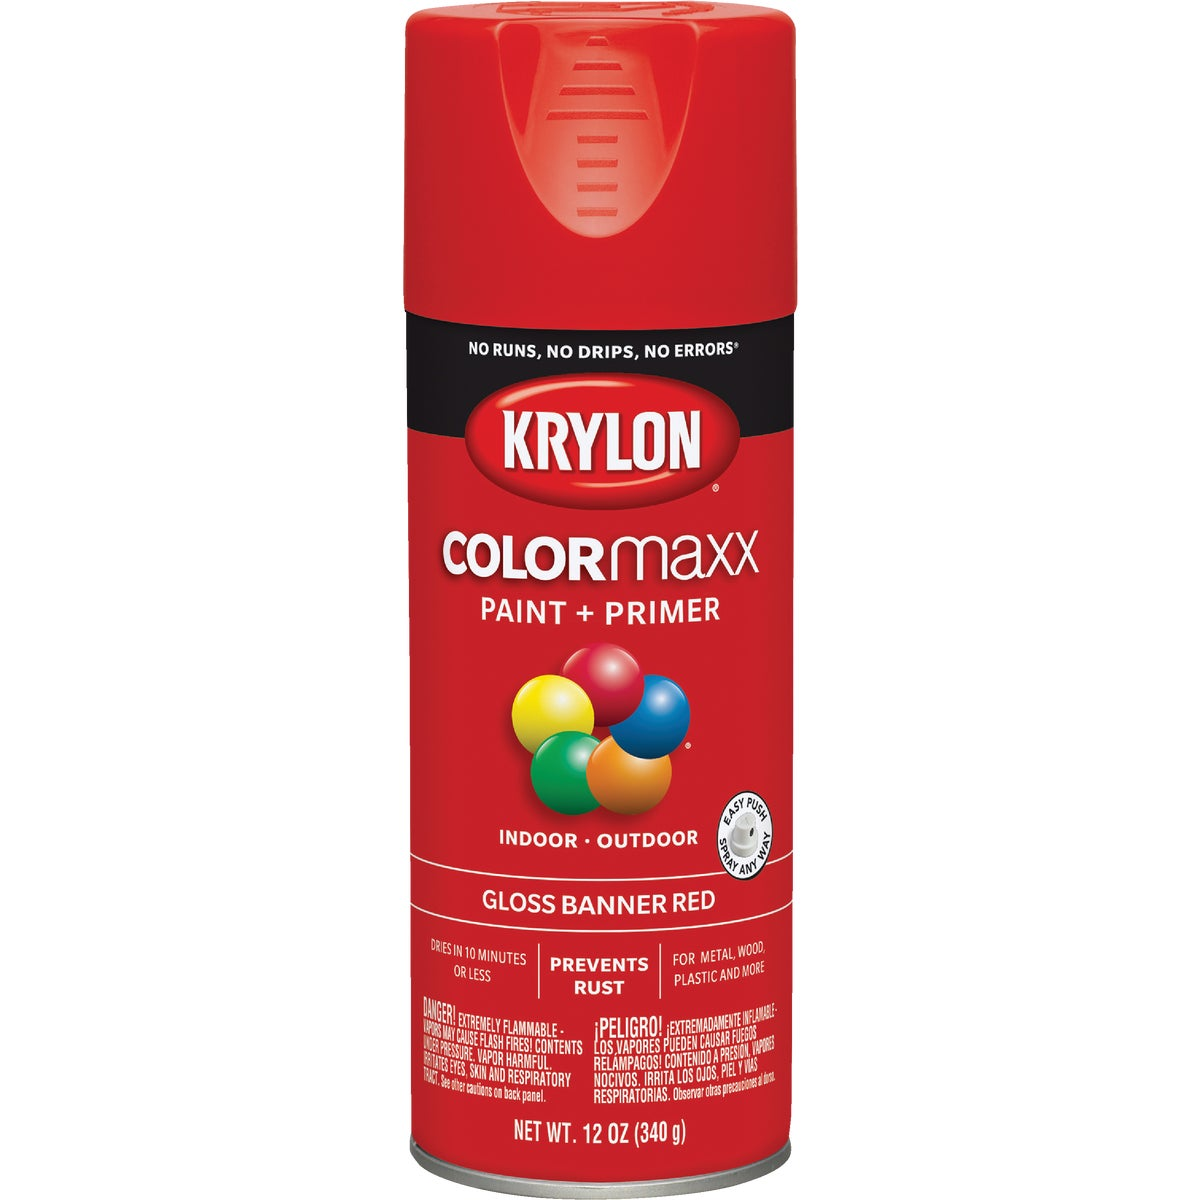 GLS BNNR RED SPRAY PAINT - 52108 by Krylon/consumer Div